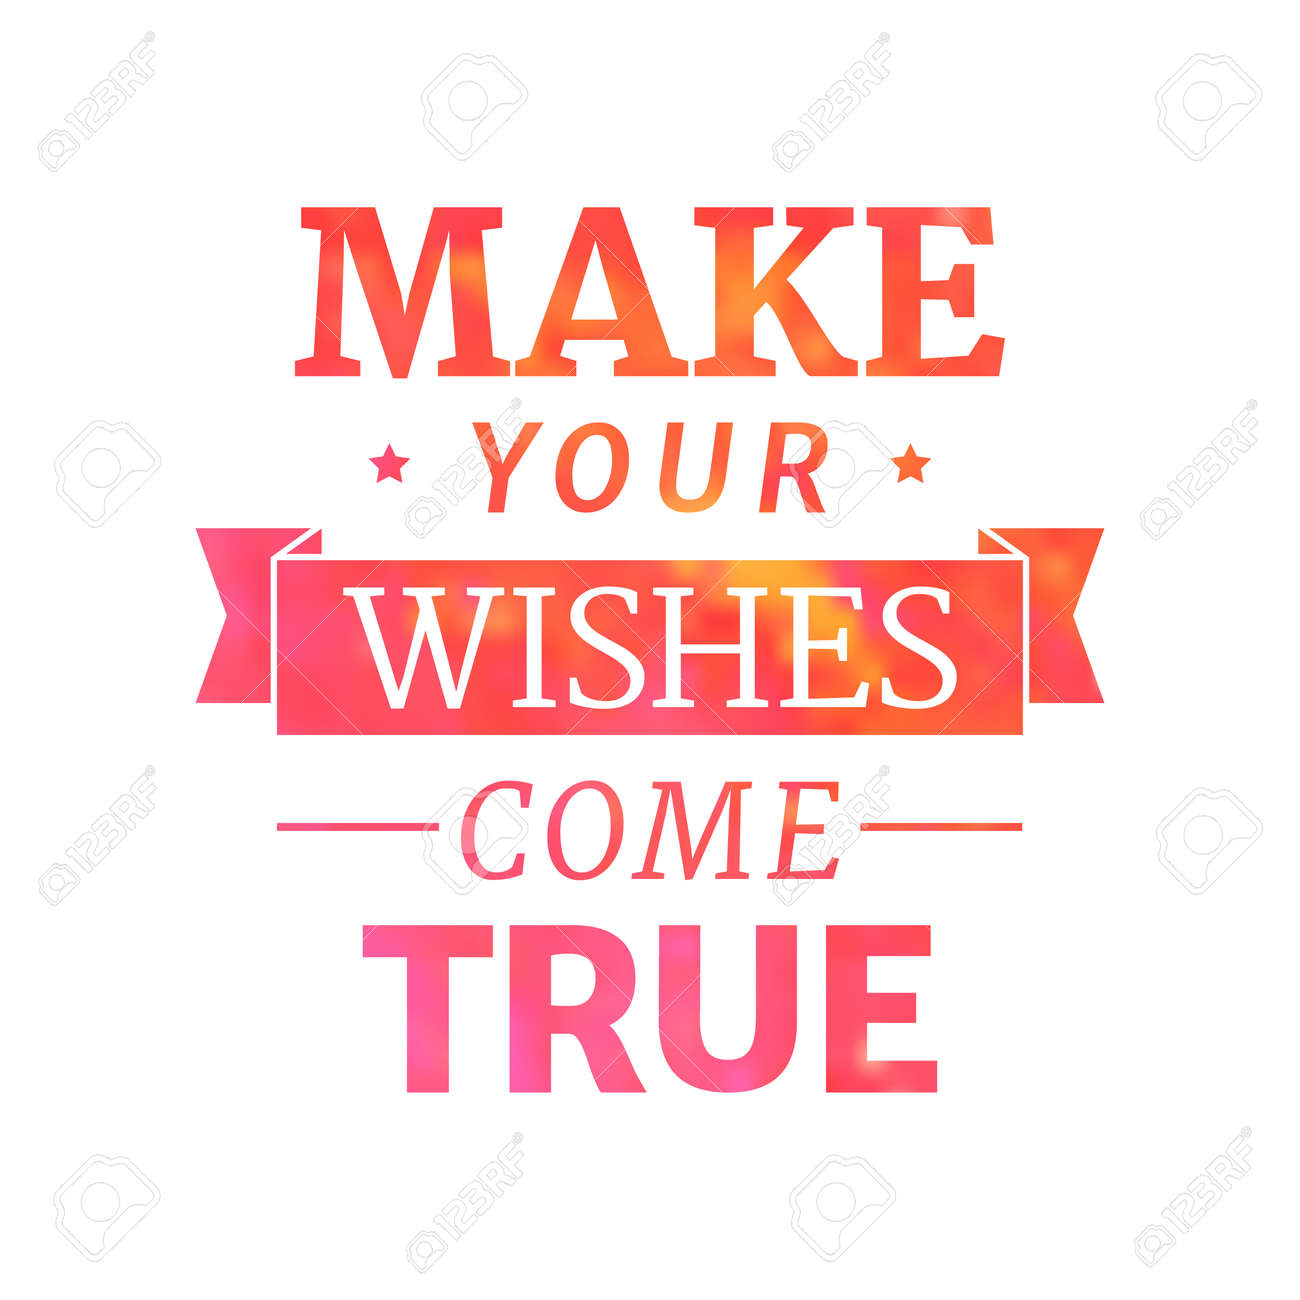 Make your wishes come true, motivational lettering quote